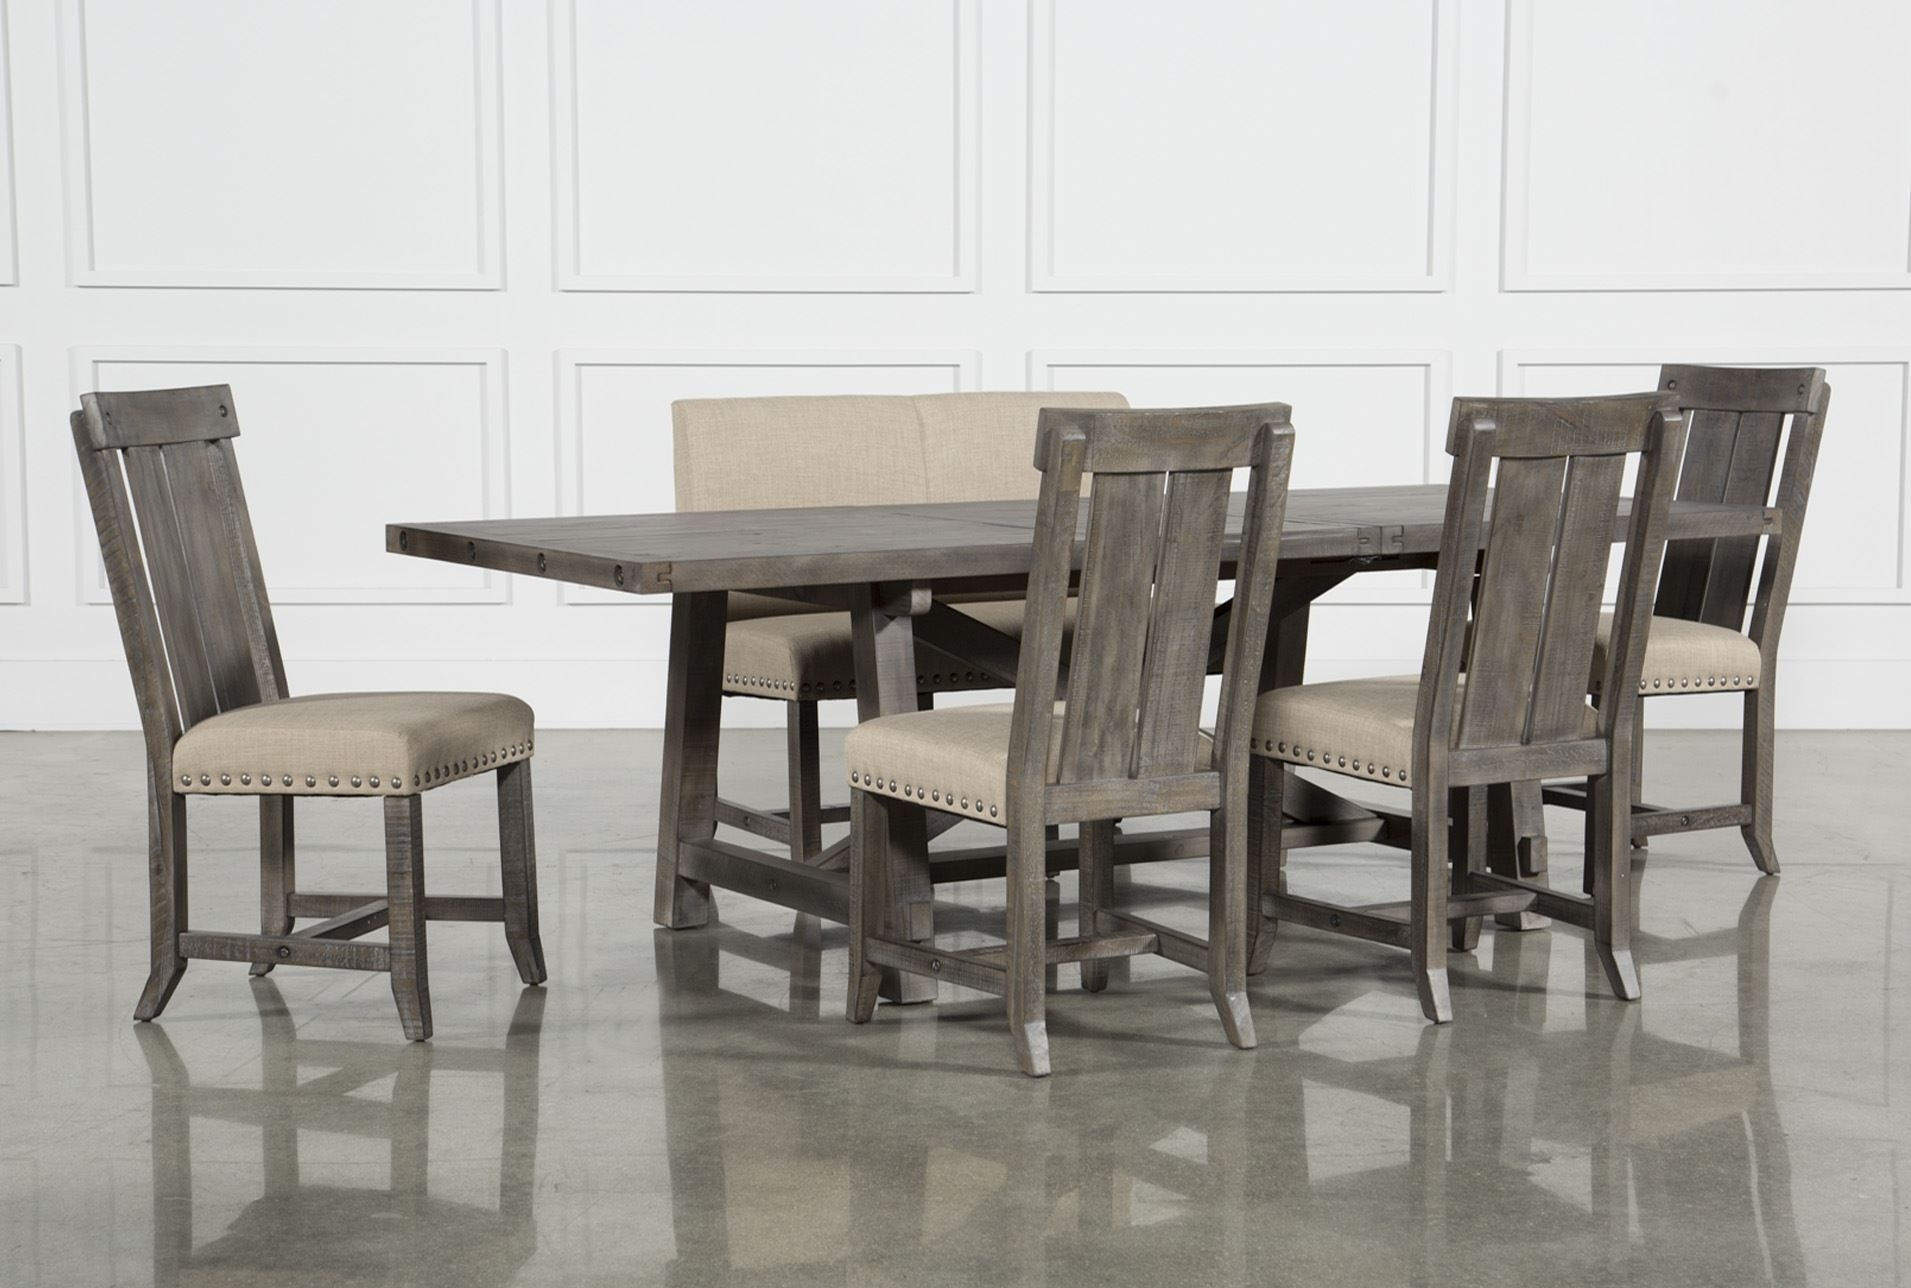 Jaxon Grey 6 Piece Rectangle Extension Dining Set W/bench & Wood Inside Most Recent Norwood 9 Piece Rectangle Extension Dining Sets (View 4 of 20)